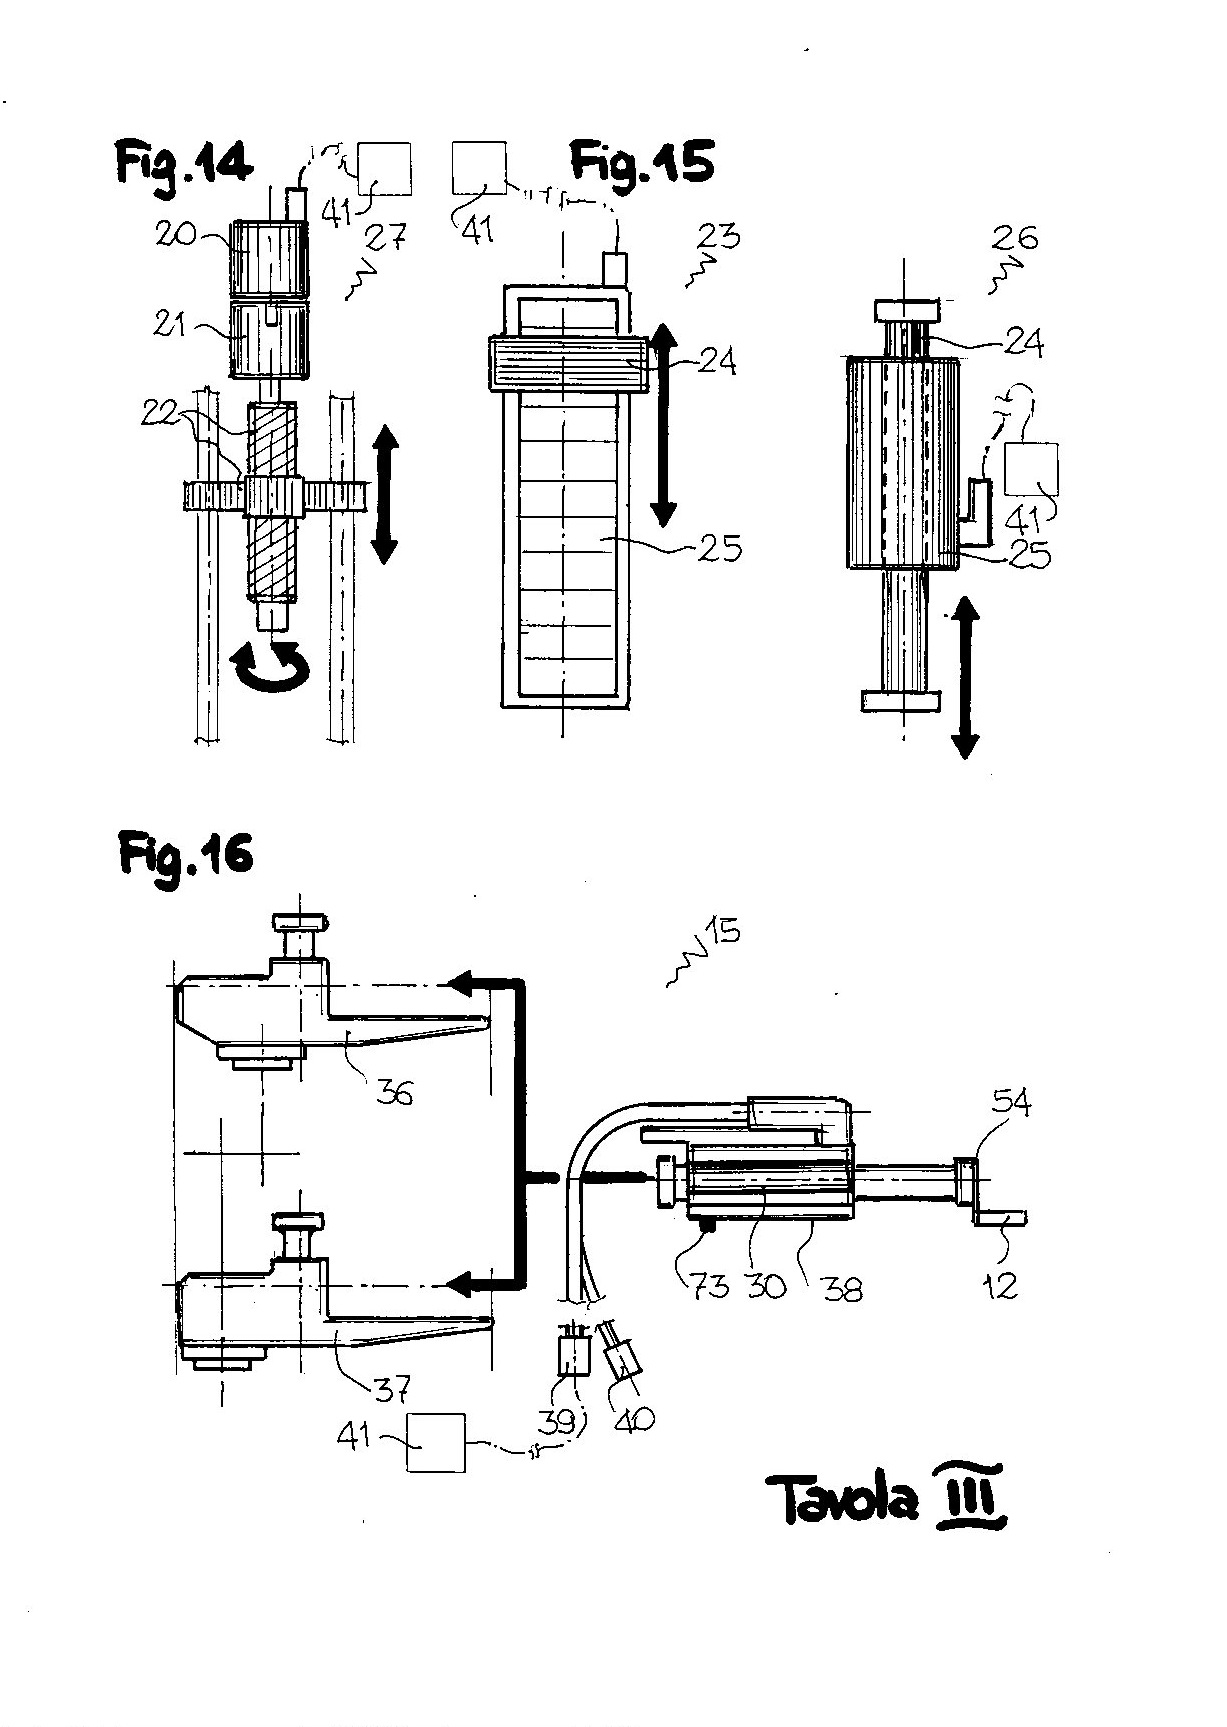 Electronic Pusher Cylinder With Linear Motor By Vprog R Amp D Engineering Design Patents